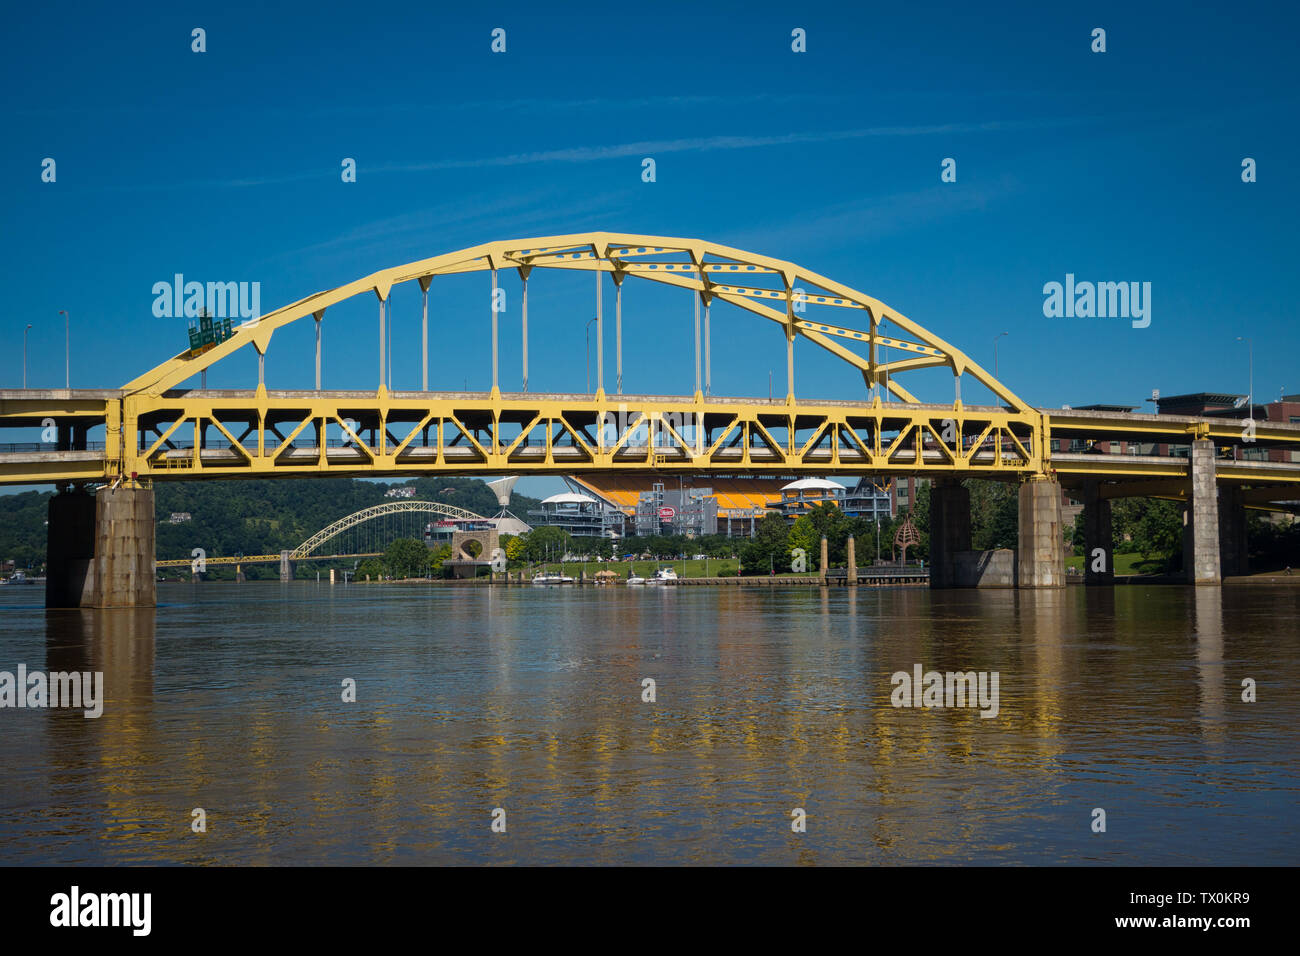 The Fort Duquesne bridge, crossing the Allegheny River, and the North Shore of Pittsburgh, Pennsylvania. - Stock Image